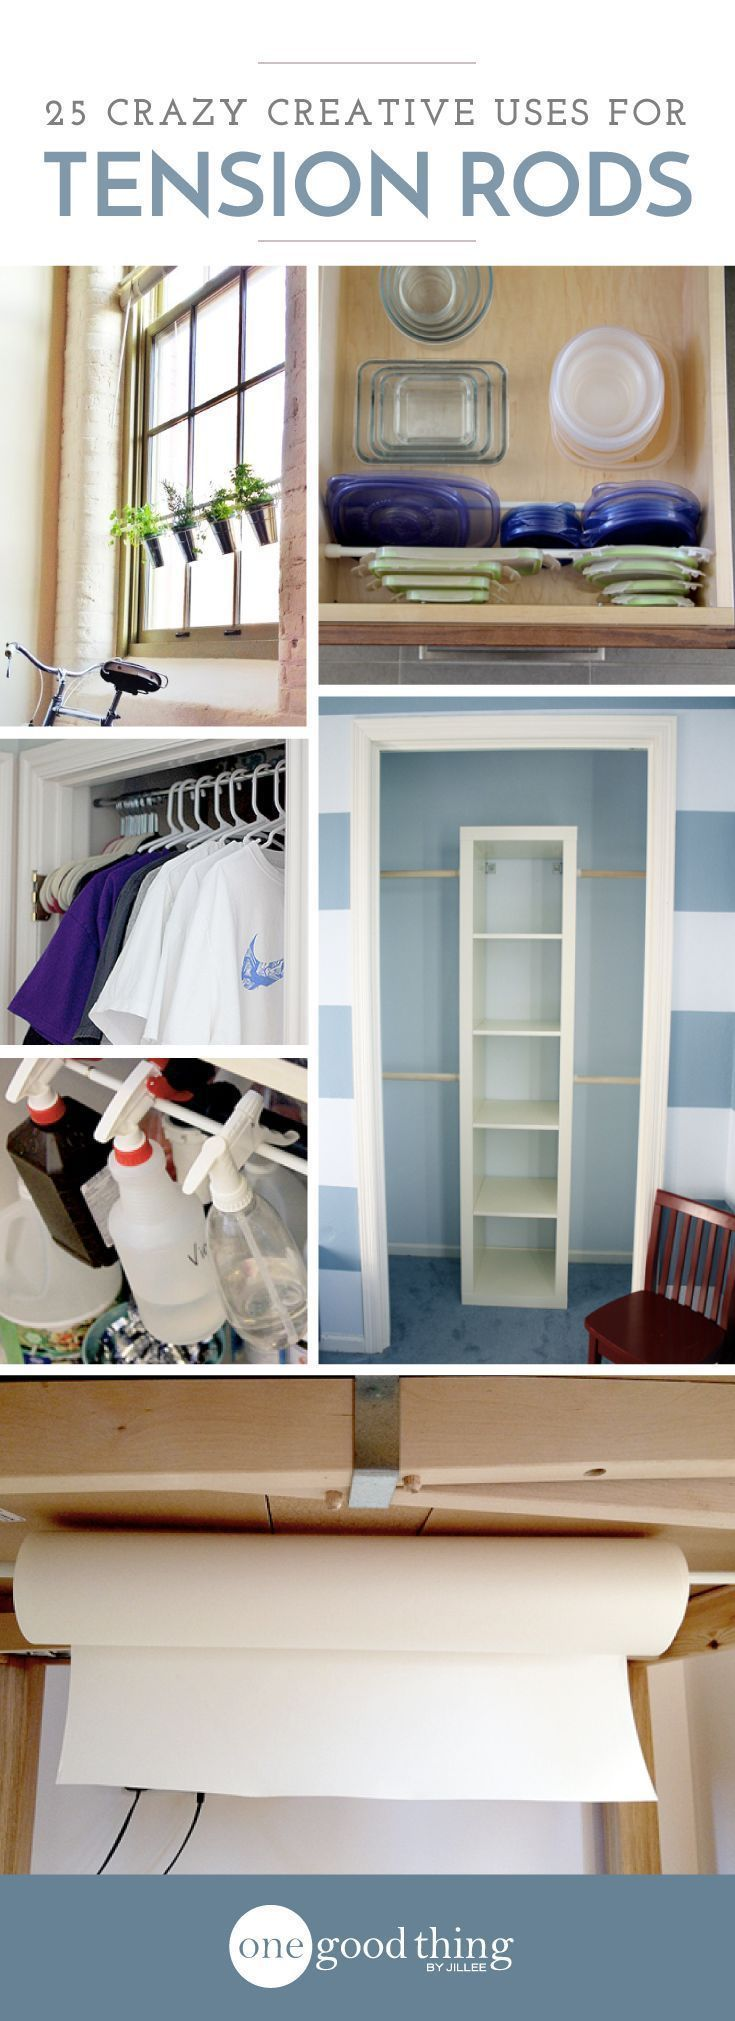 Tension rods might just be one of THE most useful items organizing your home! They're inexpensive, can fit into almost any size space, and are completely removable.